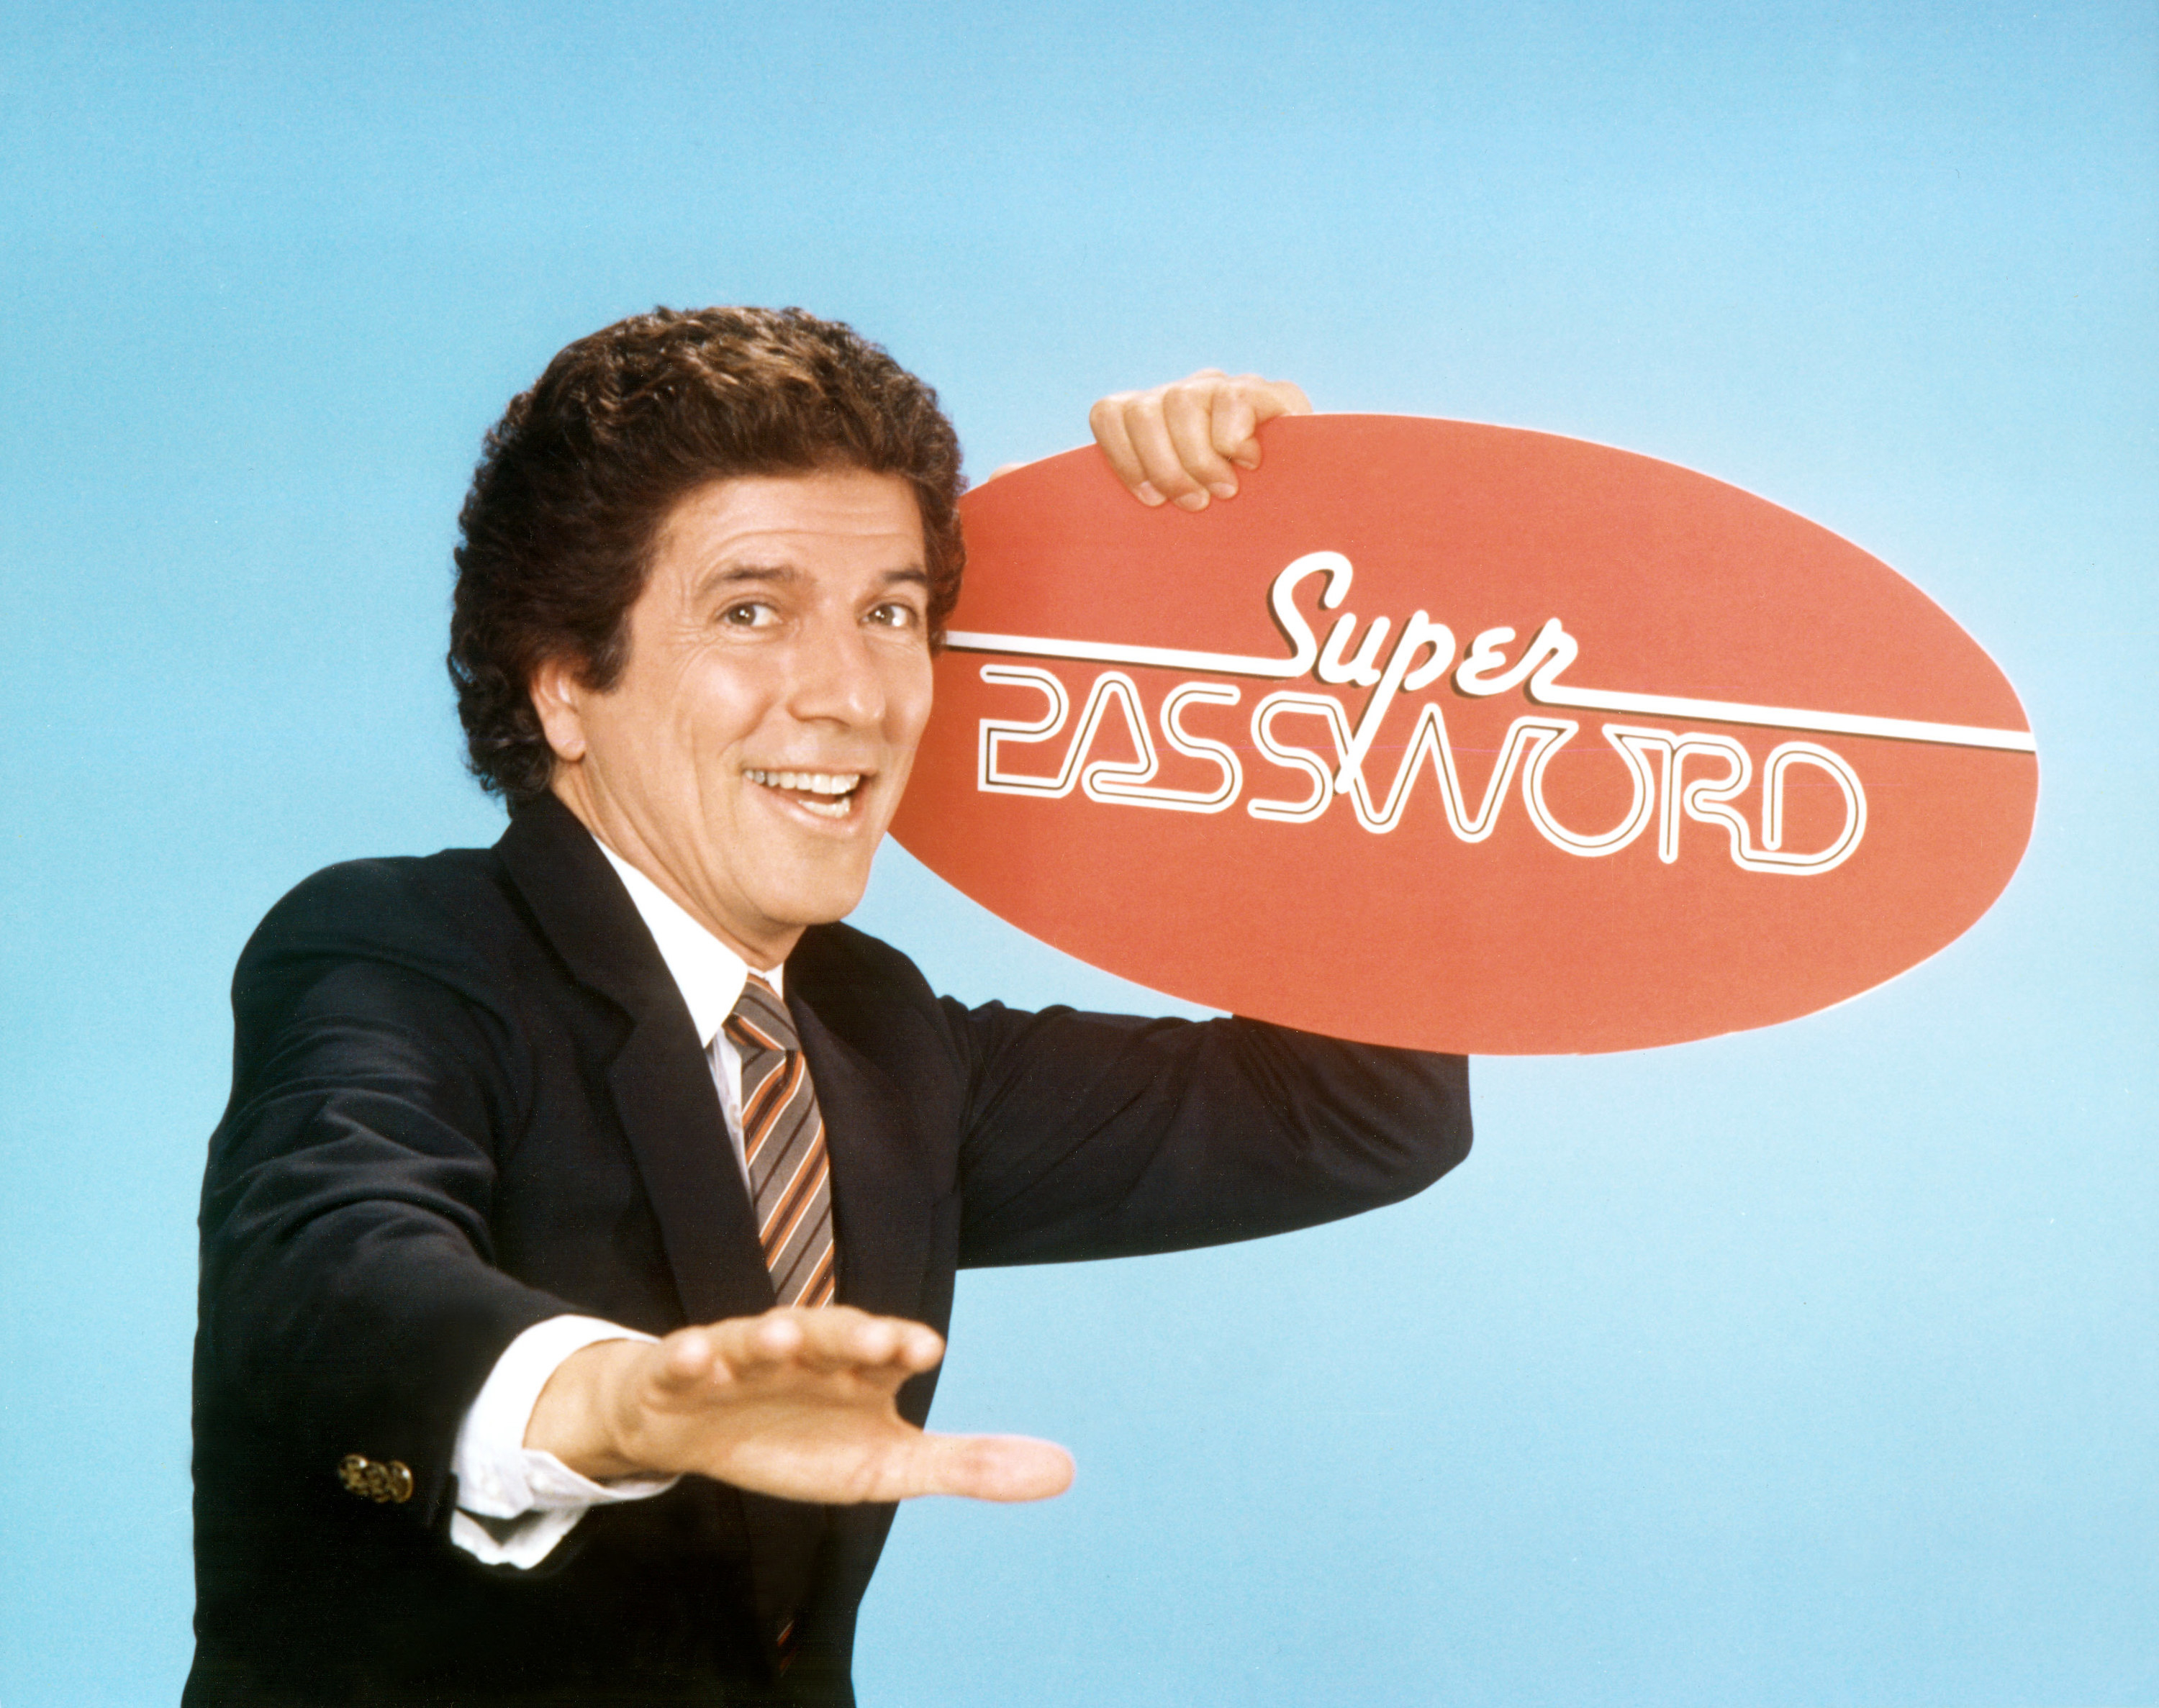 A promotional photo for super password